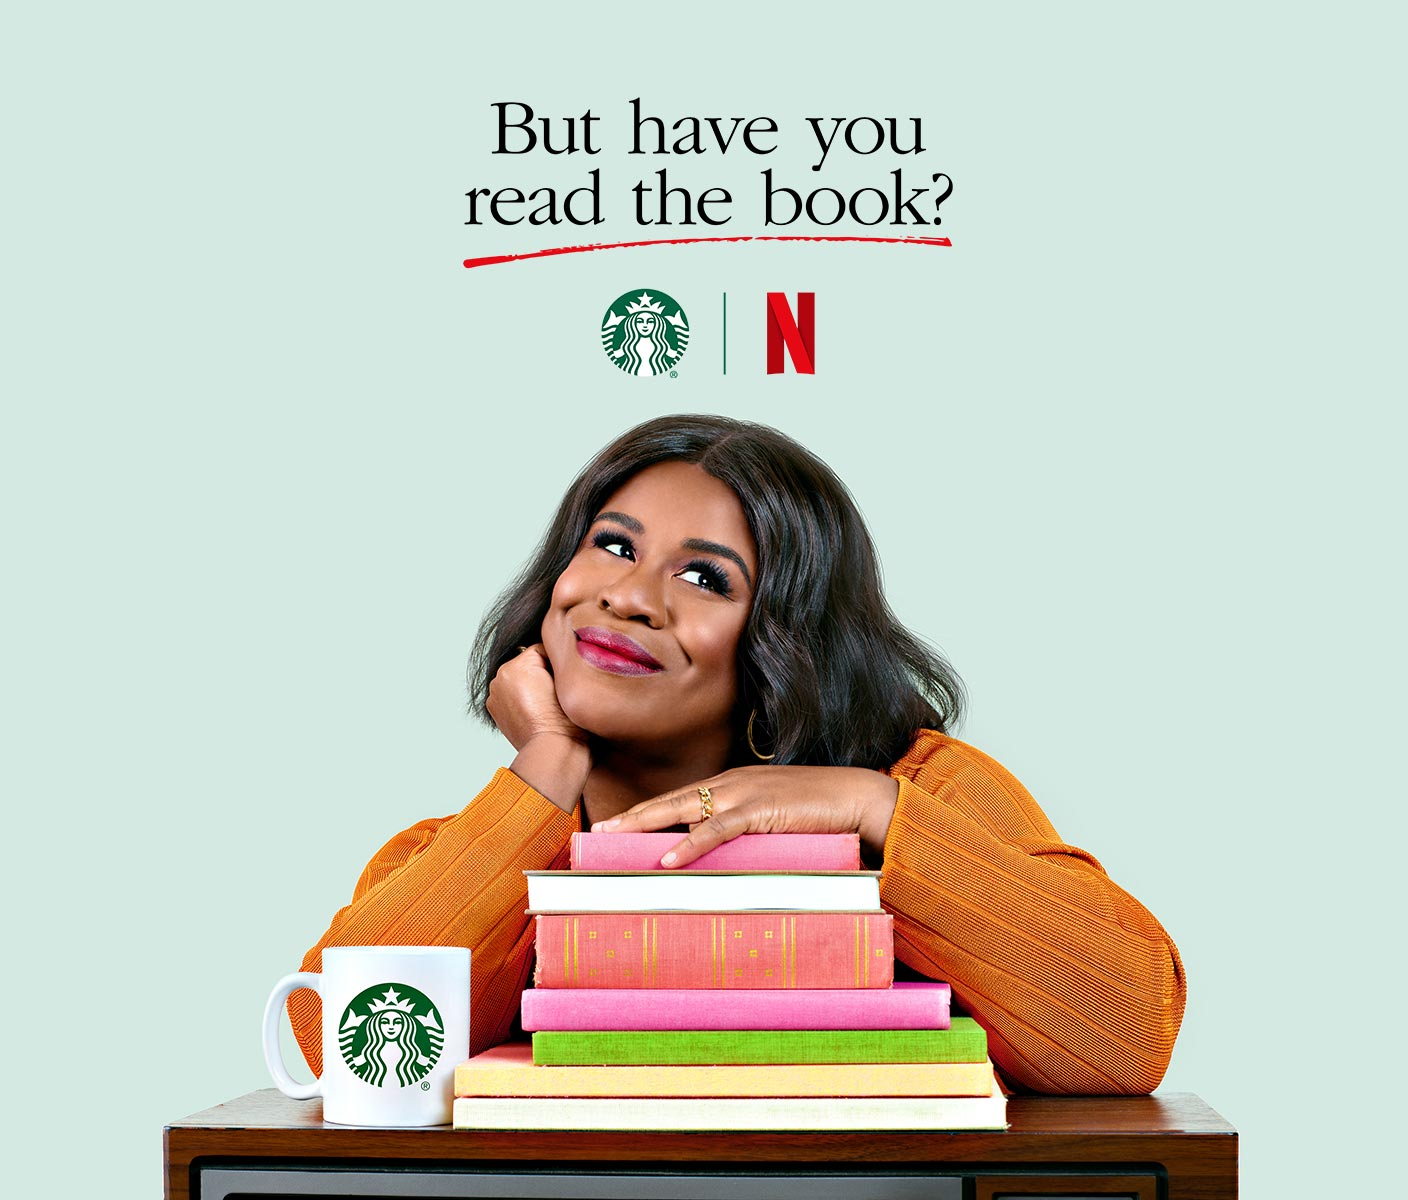 Actress Uzo Aduba poses with a pile of books, a TV and a Starbucks mug to promote a new series named But Have You Read the Book.